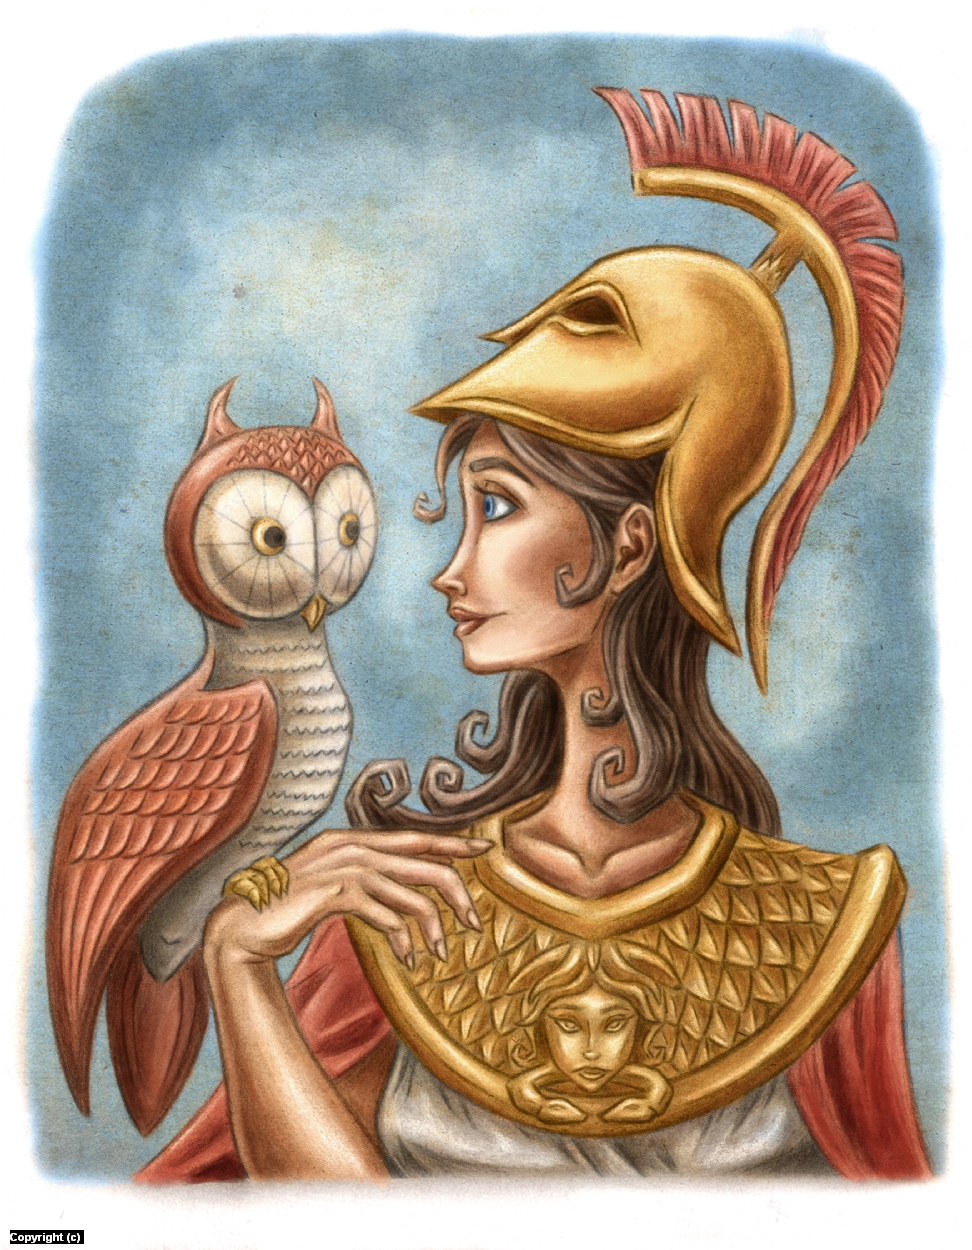 Athena  Artwork by Paul Demakes